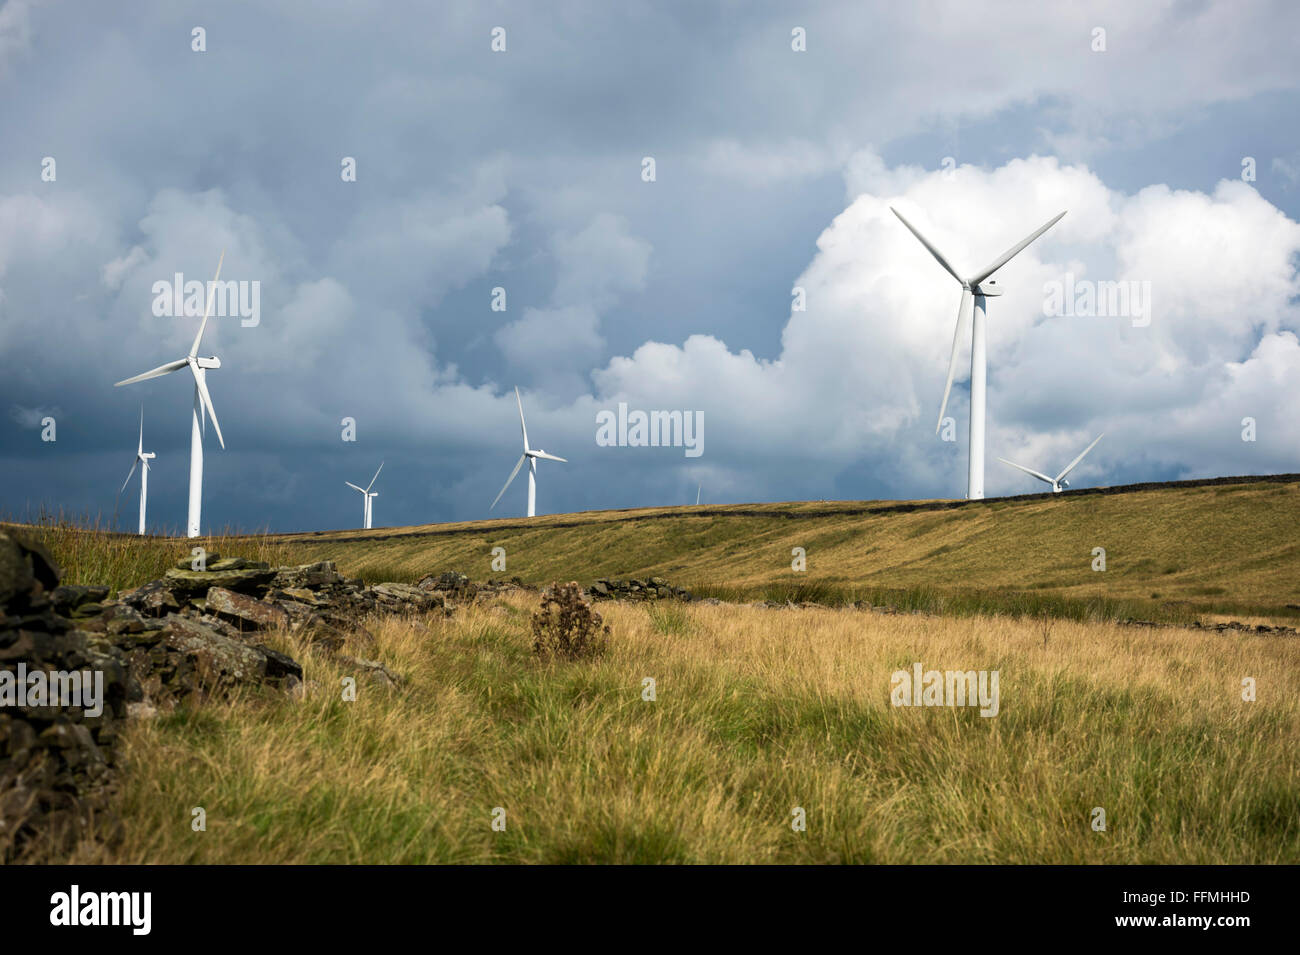 wind turbine and clouds - Stock Image